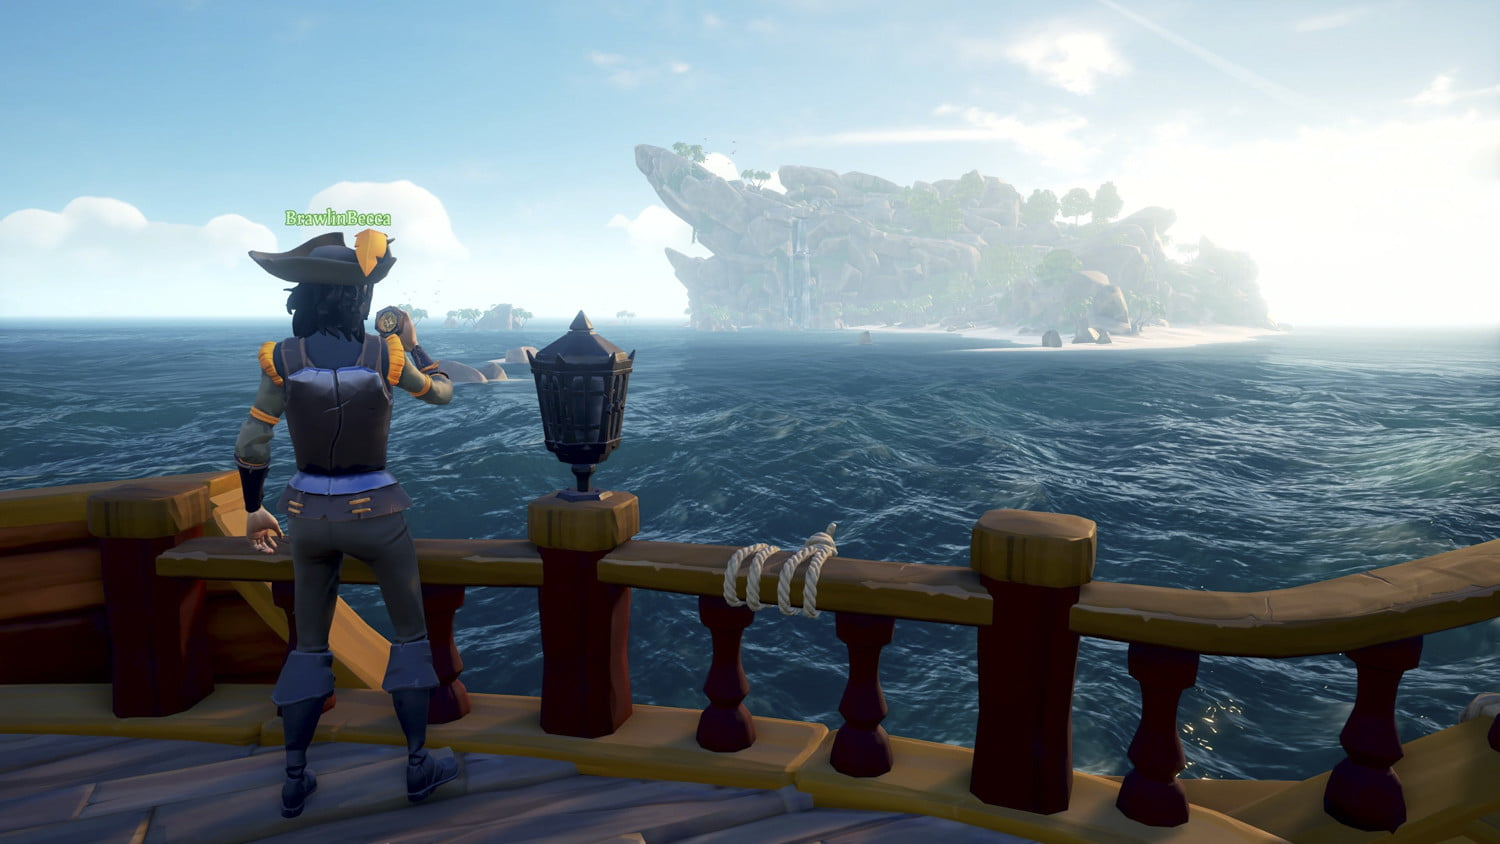 Sea Of Thieves   Spying an island form the ship